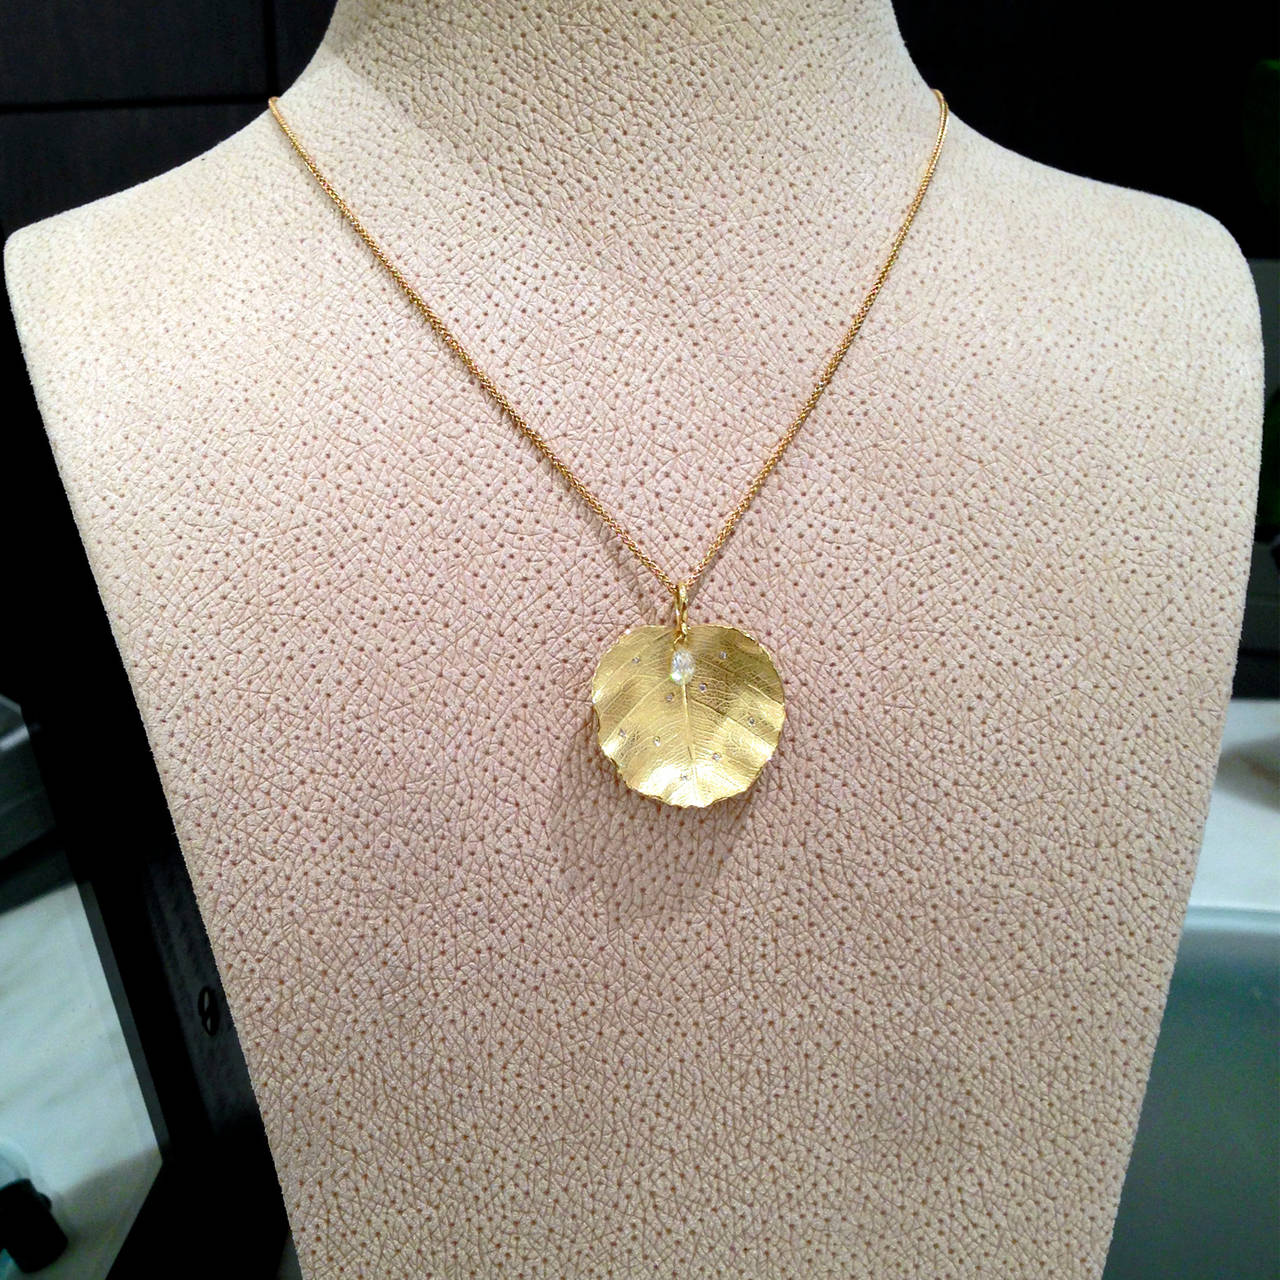 Lotus Leaf Necklace handcrafted by jewelry artist Barbara Heinrich in matte finished 18k yellow gold with a dangling 0.28 carat white diamond briolette drop and accompanied by 0.05 total carats of bezel-set round brilliant-cut white diamonds.